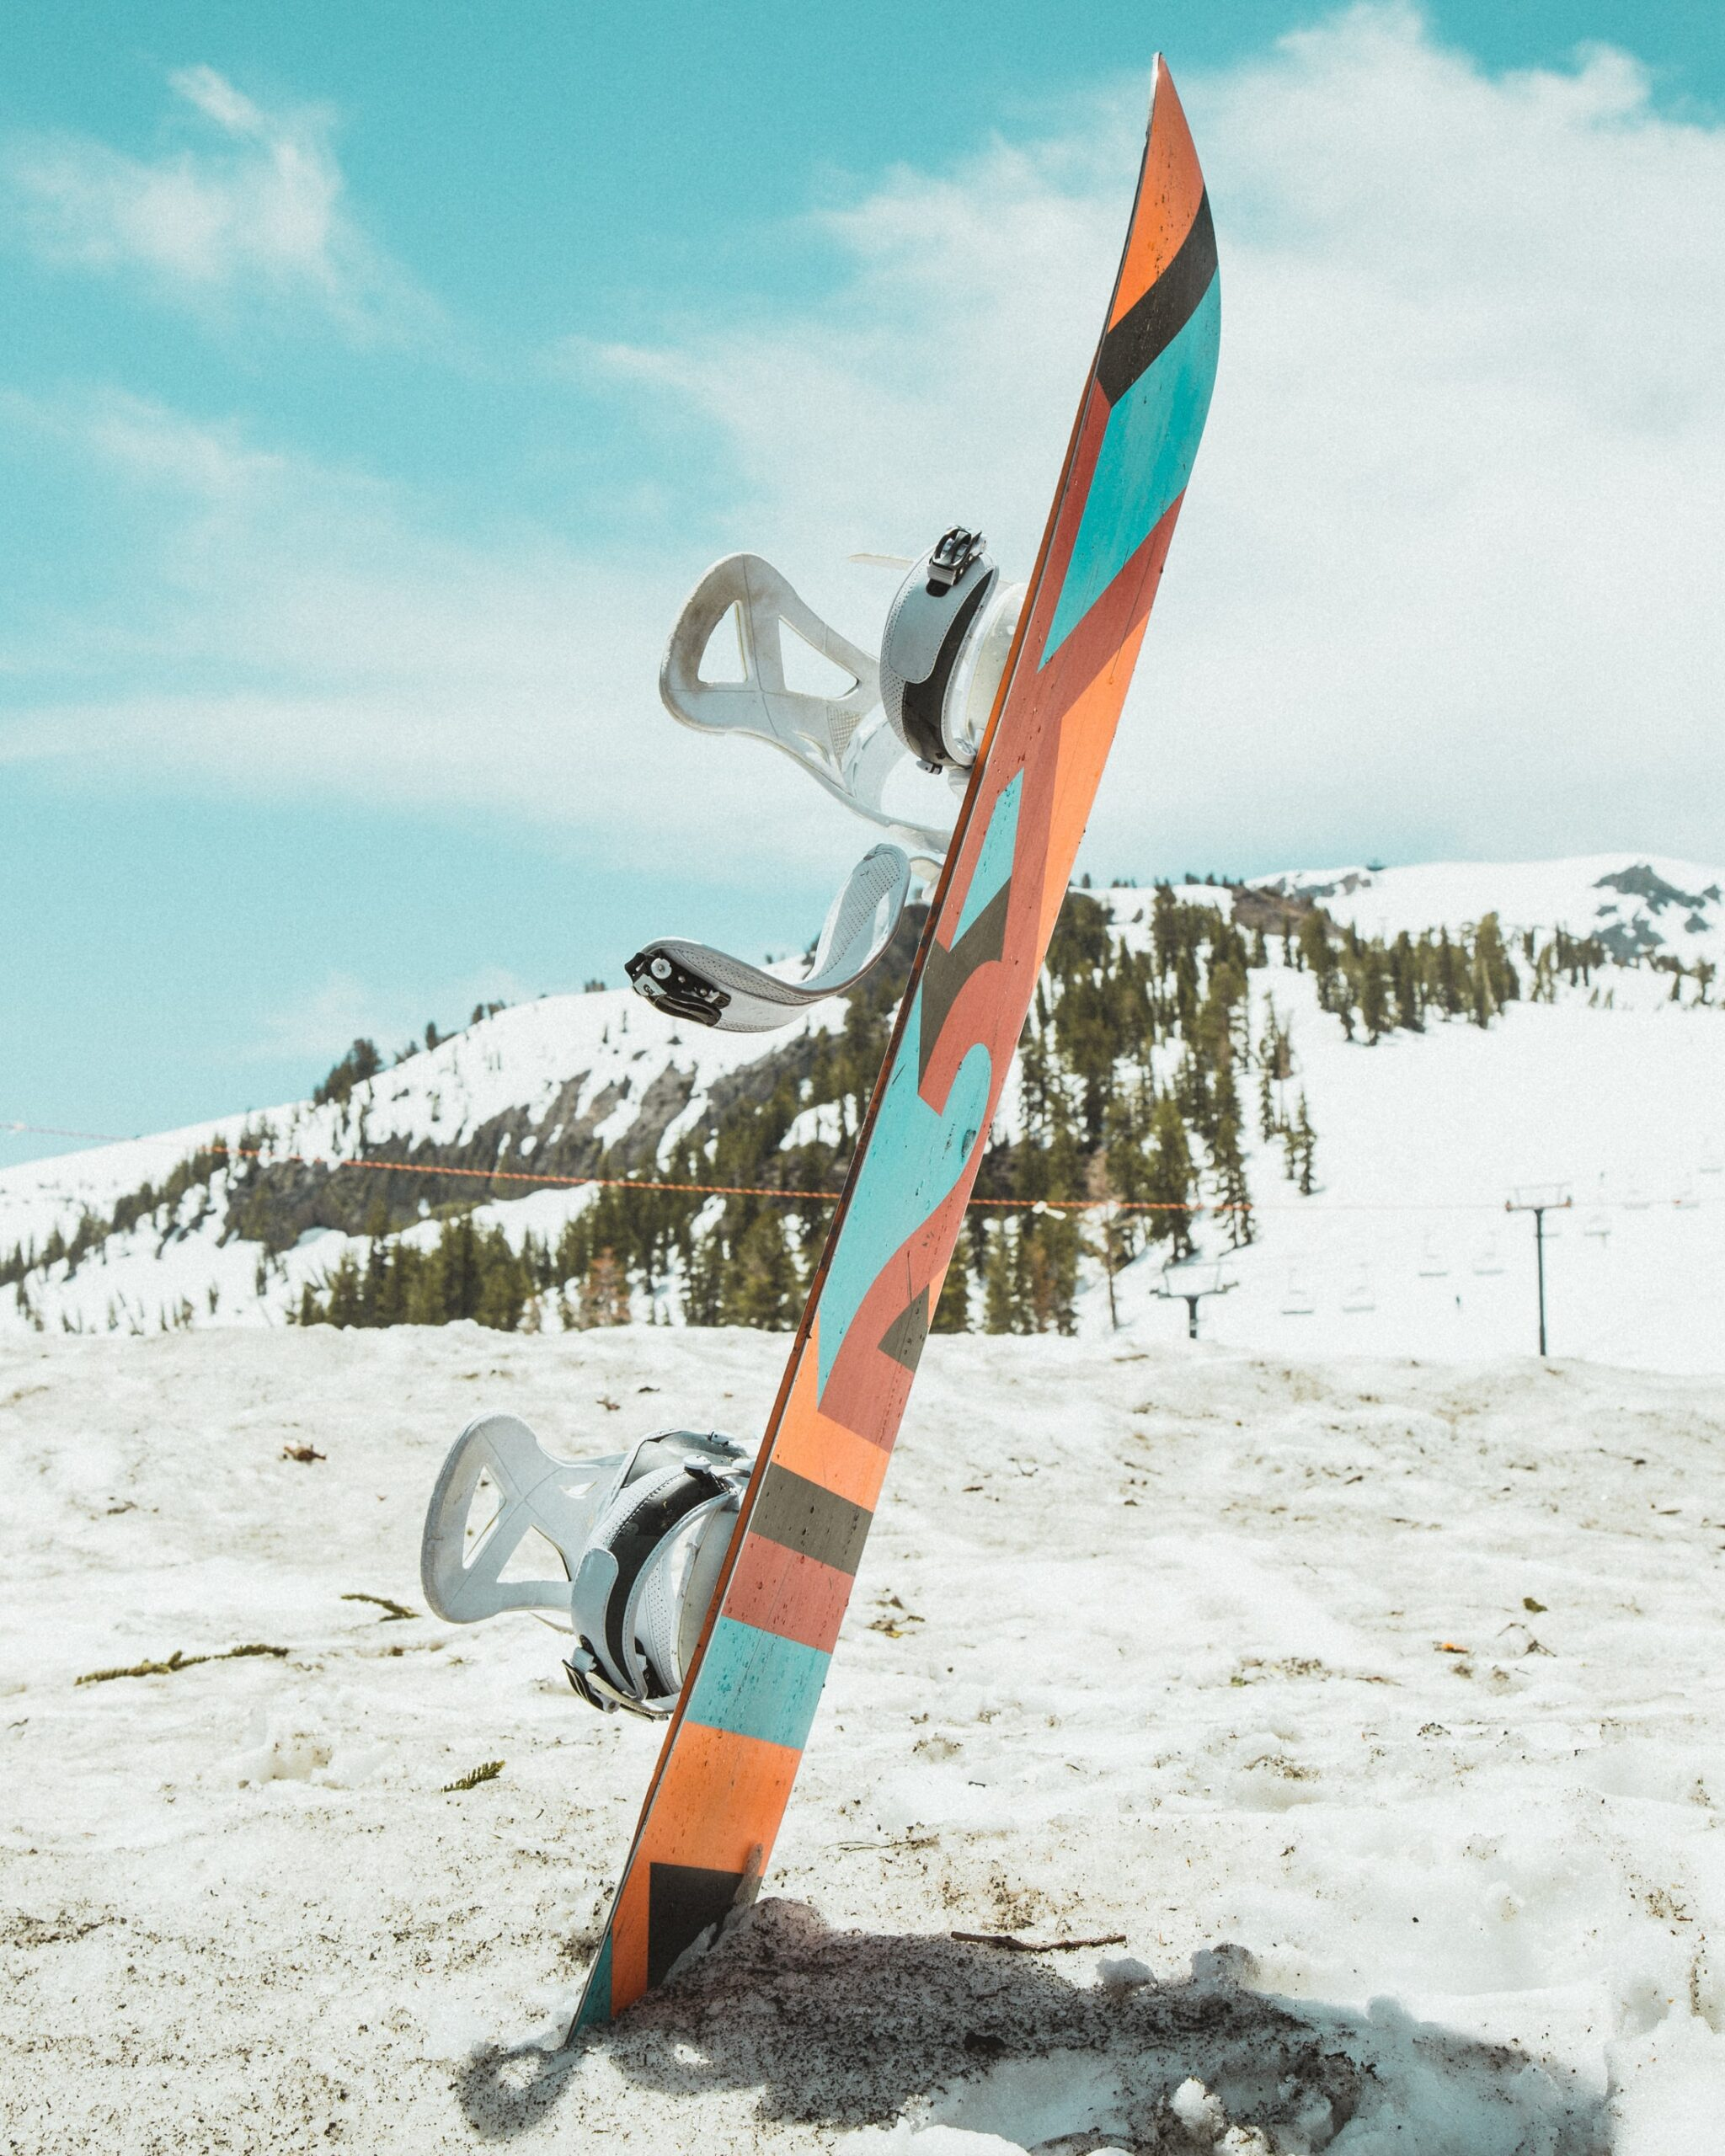 Snowboard with mounted bindings